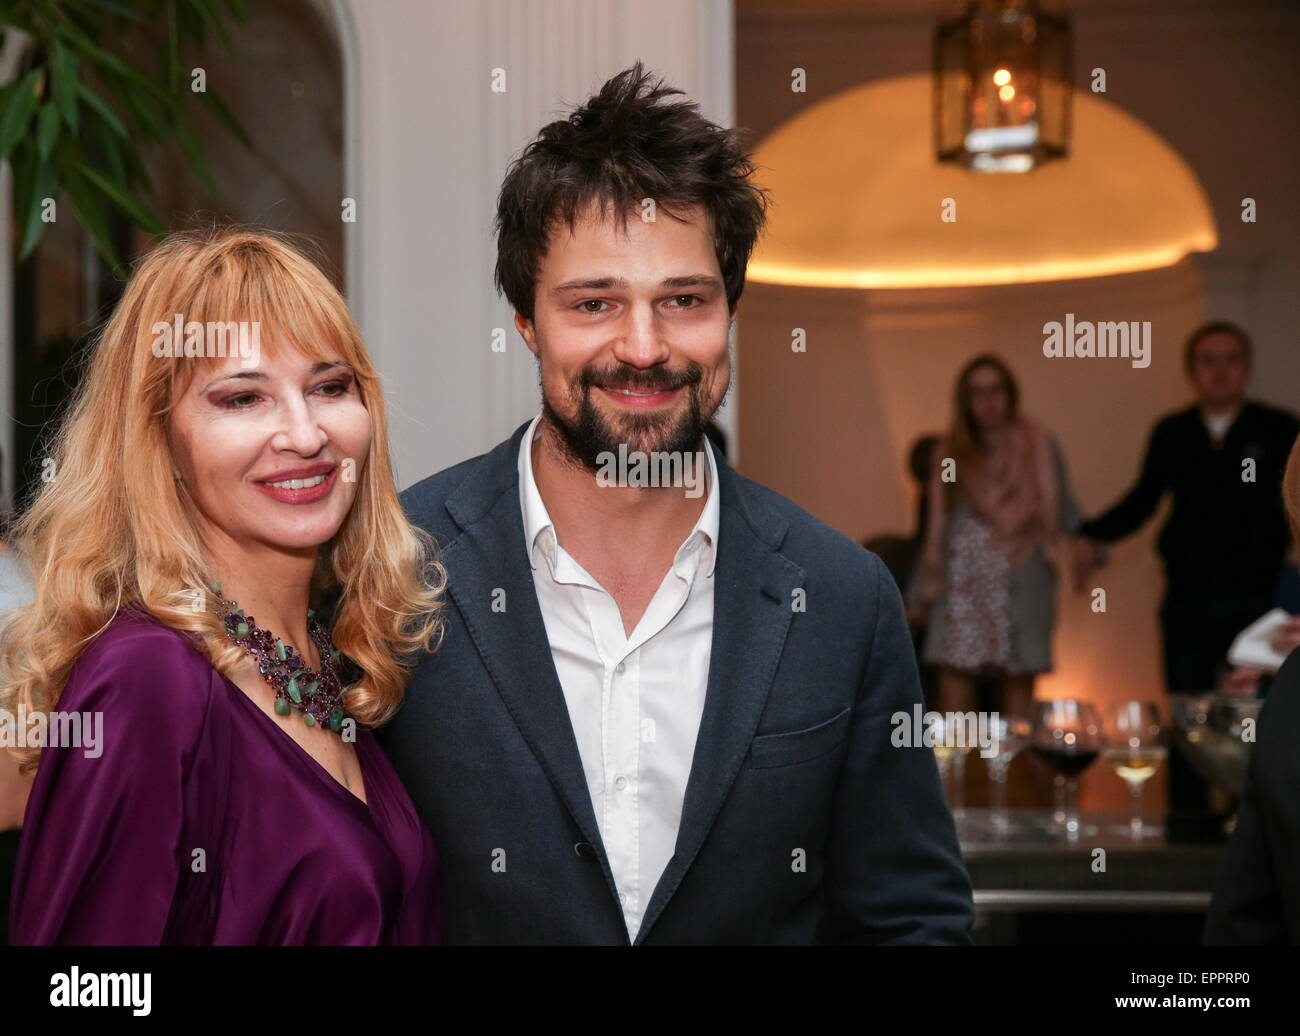 Danila Kozlovsky: the creative way of a talented modern actor 12